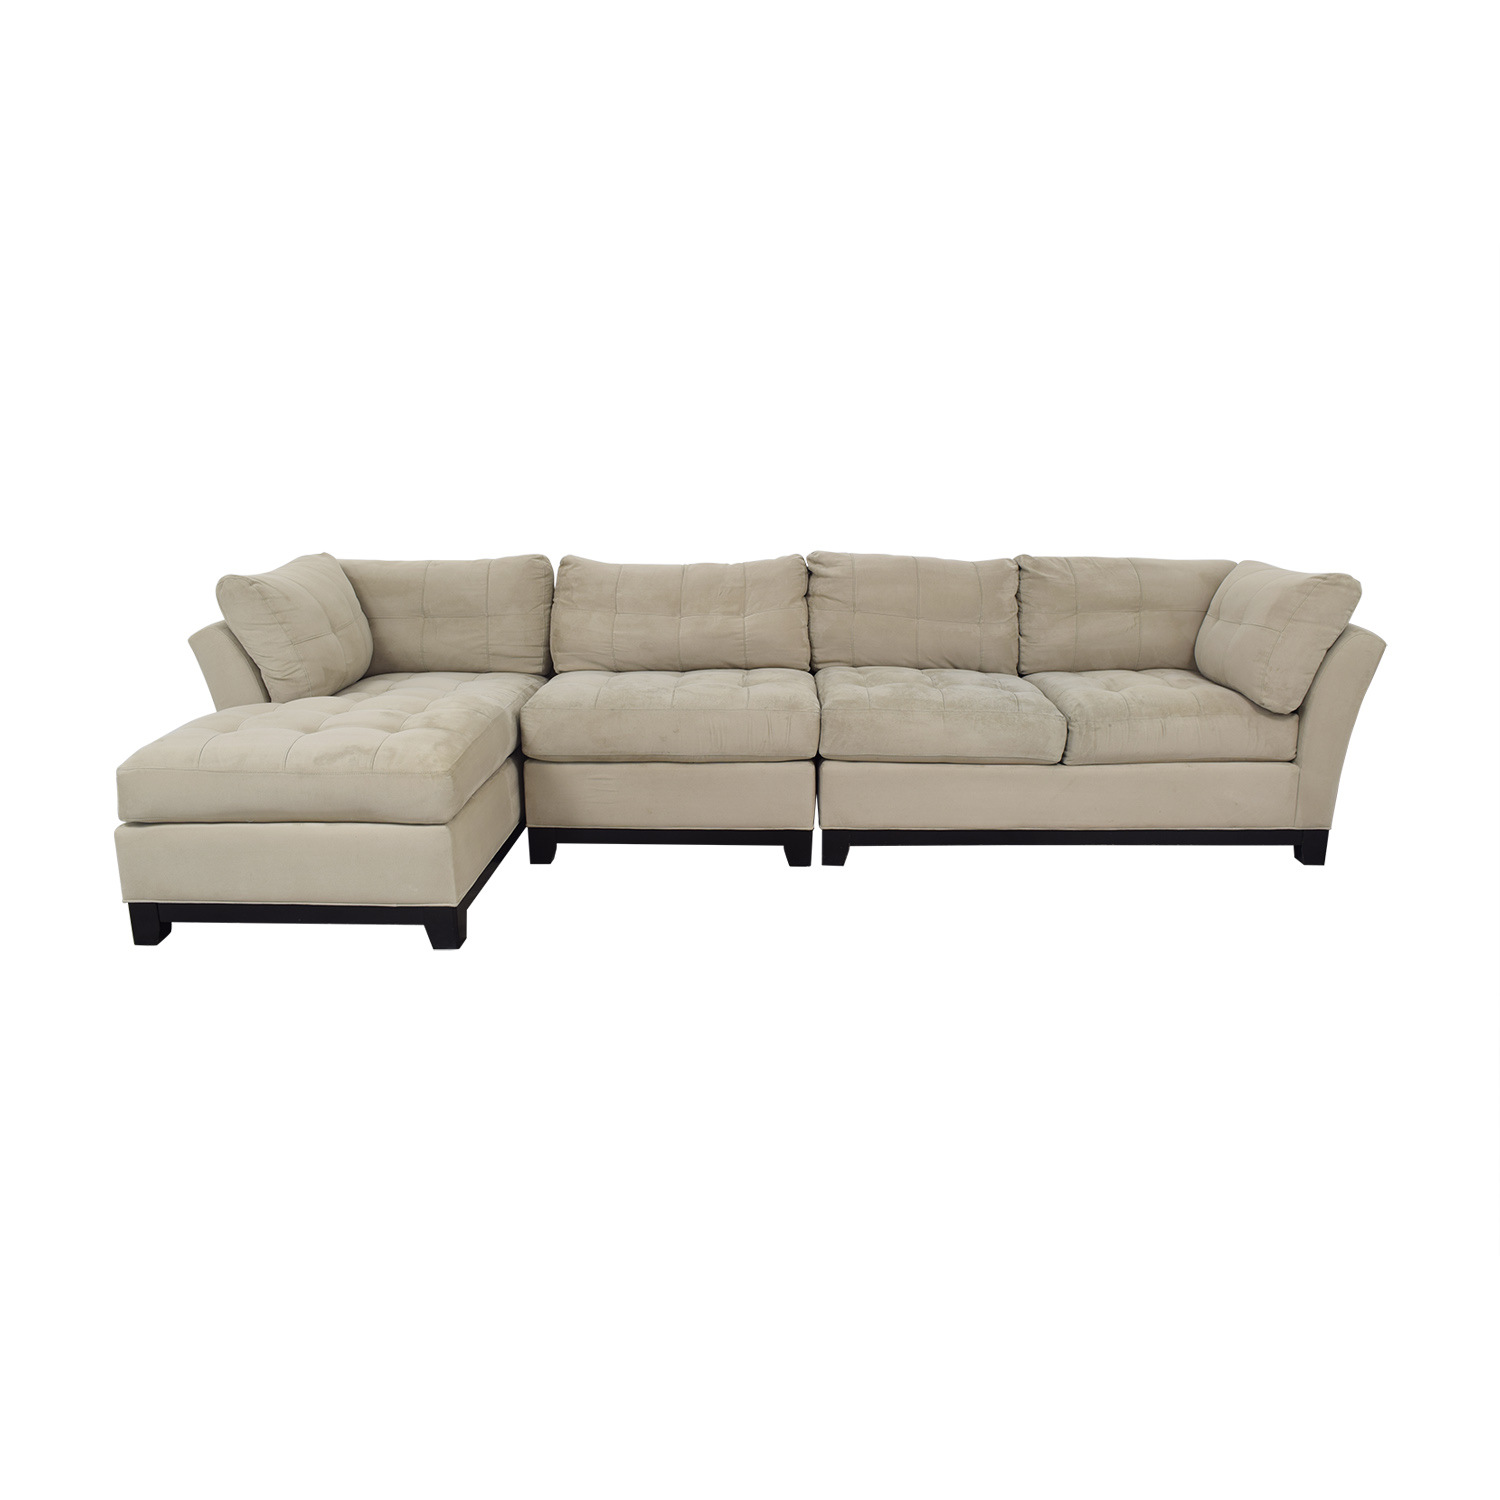 53 Off W Schillig W Schillig Leather Sectional And